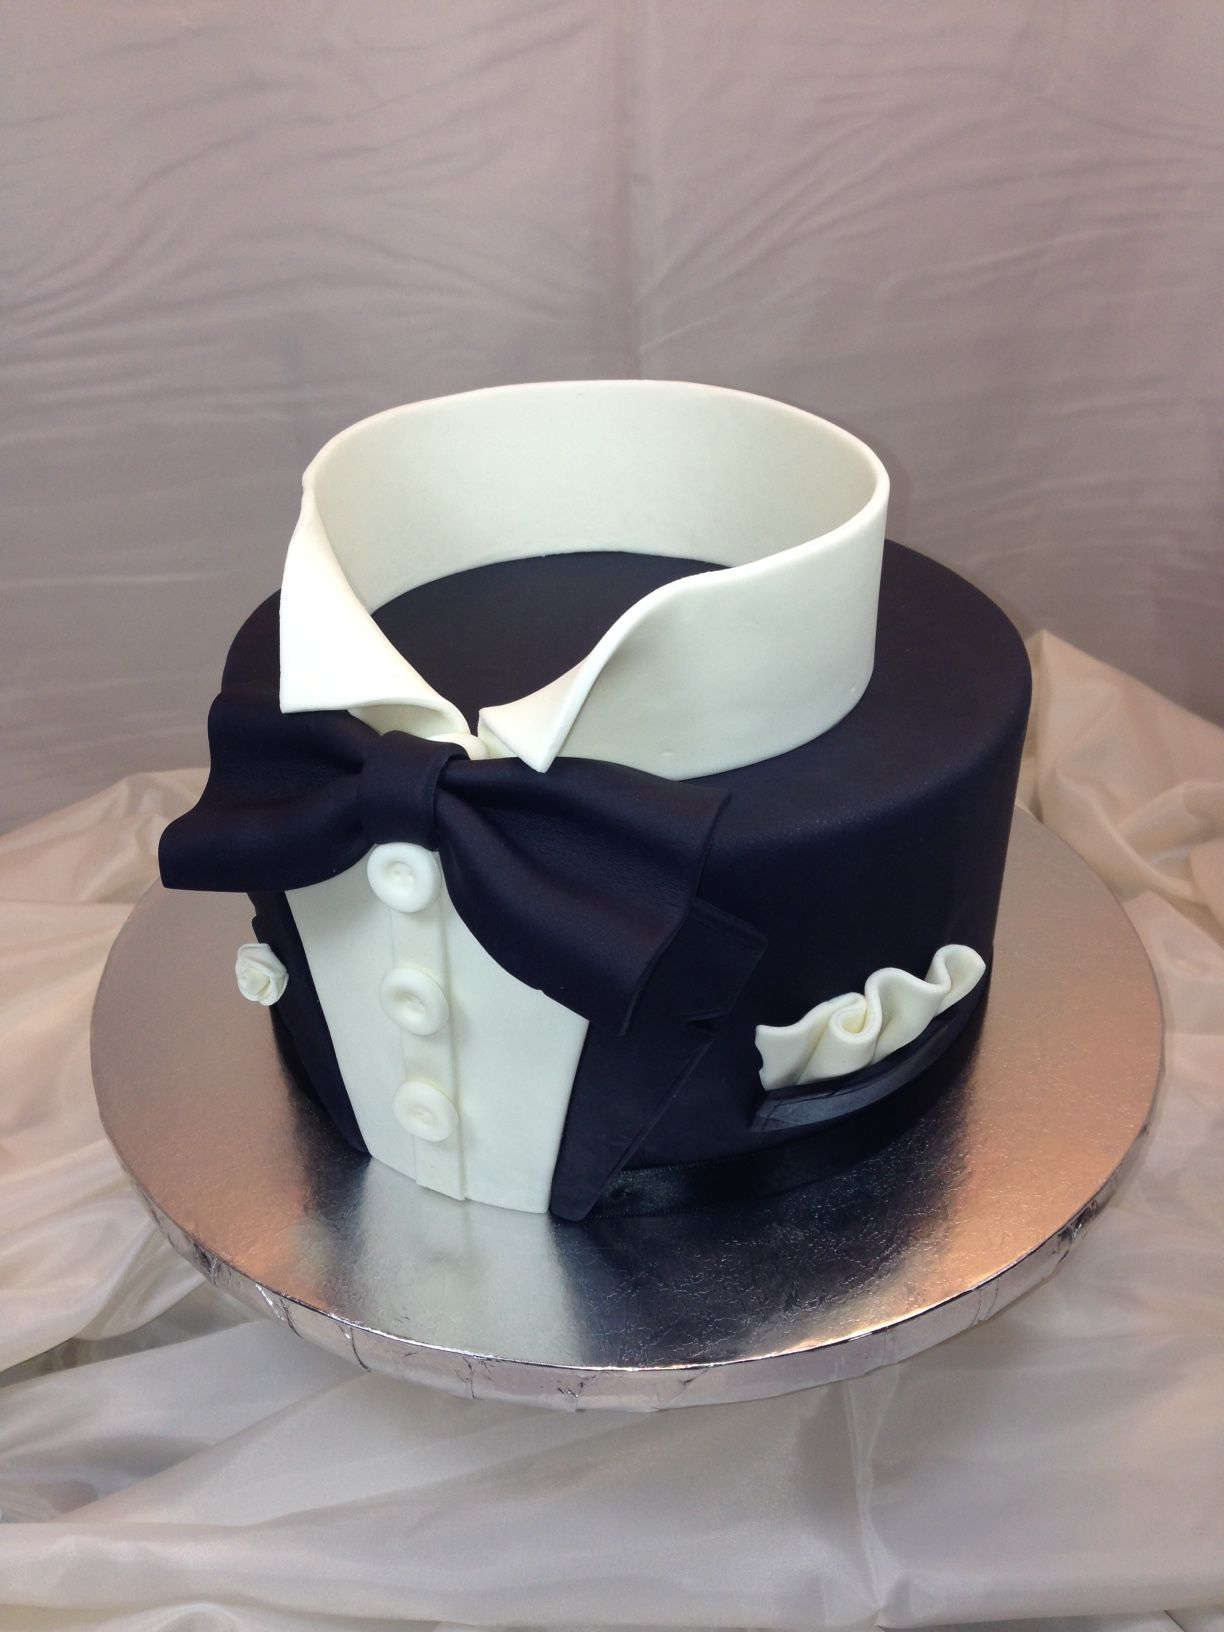 tuxedo grooms cake cakes pinterest torte f r m nner motivtorten und torten. Black Bedroom Furniture Sets. Home Design Ideas